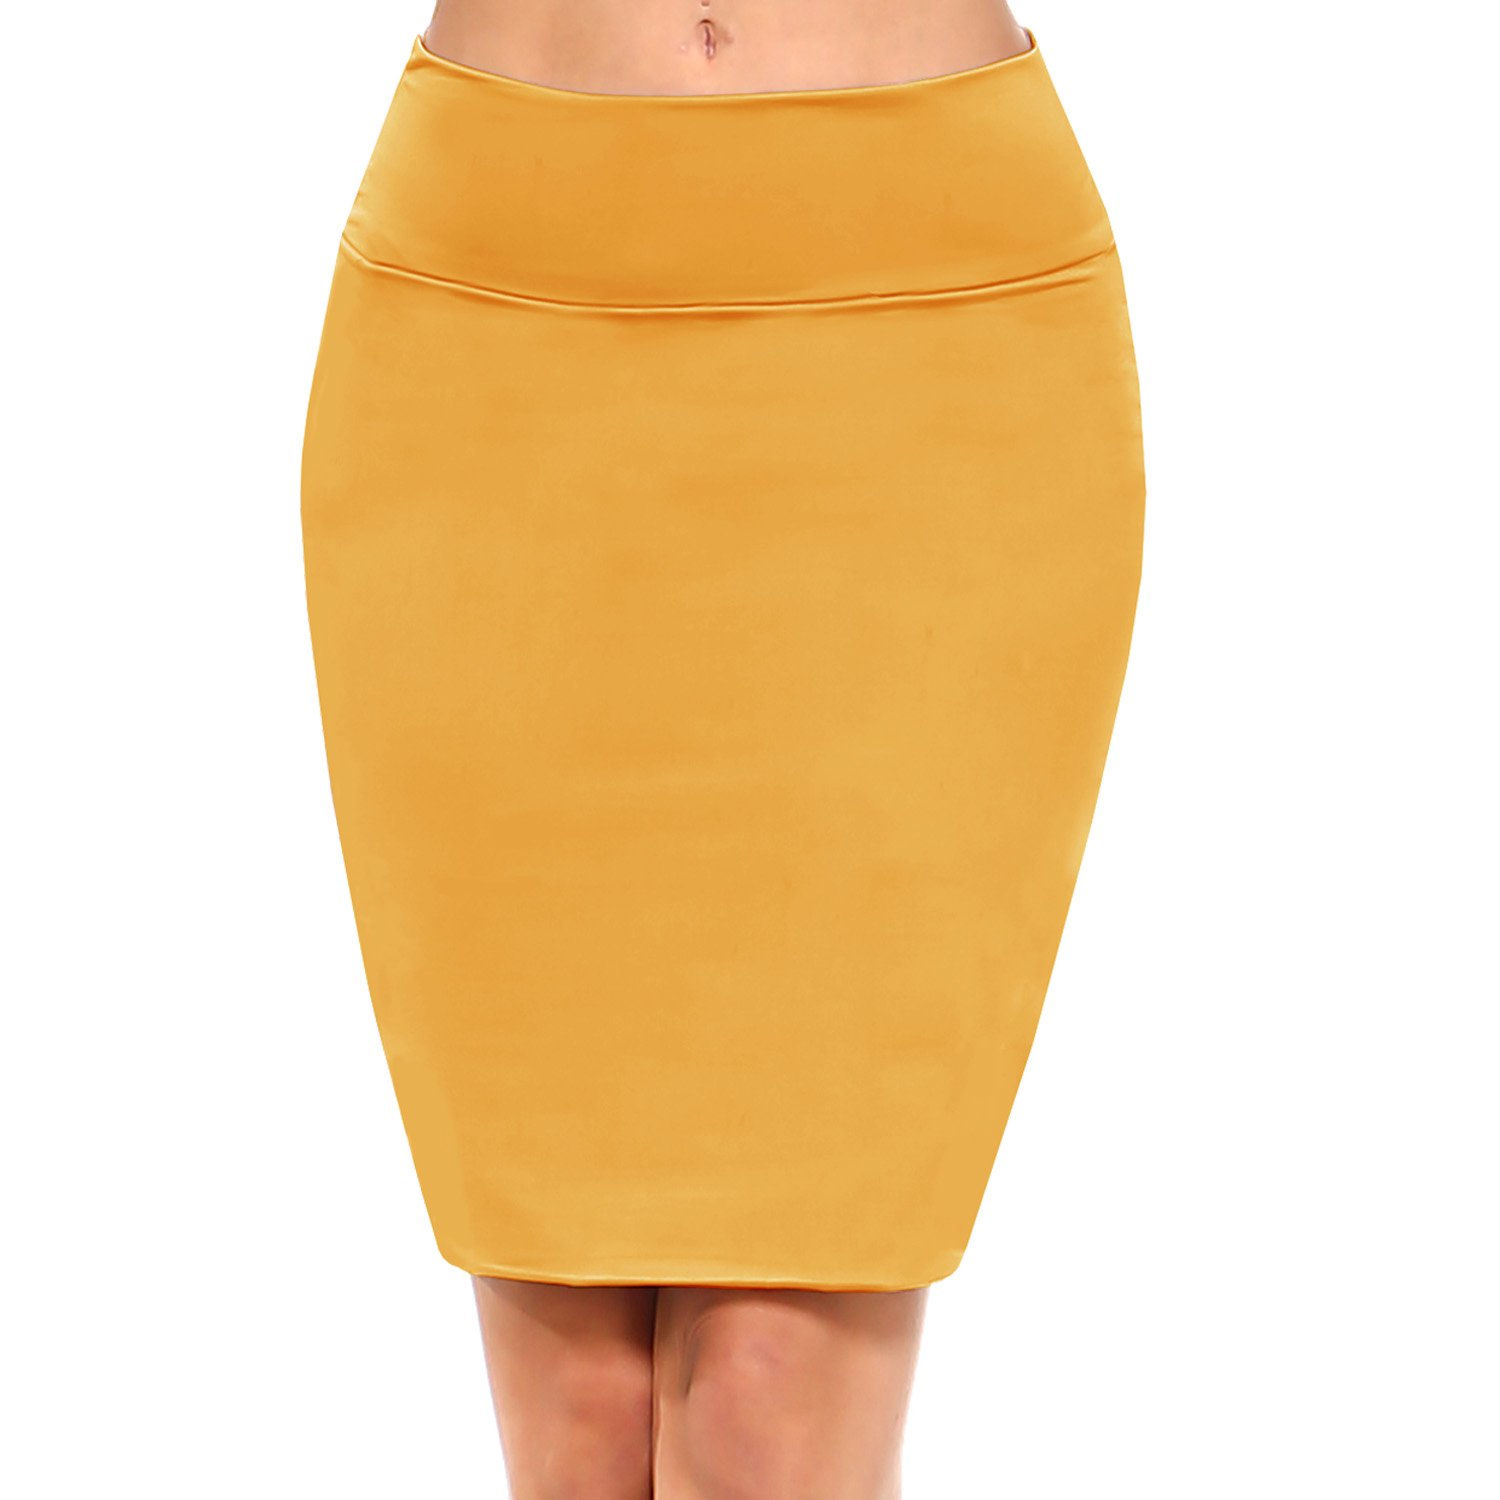 Fashionazzle Women's Casual Bodycon Solid and Print Stretchy Pencil Mid Skirt (Smalll, BMS02-Mustard)